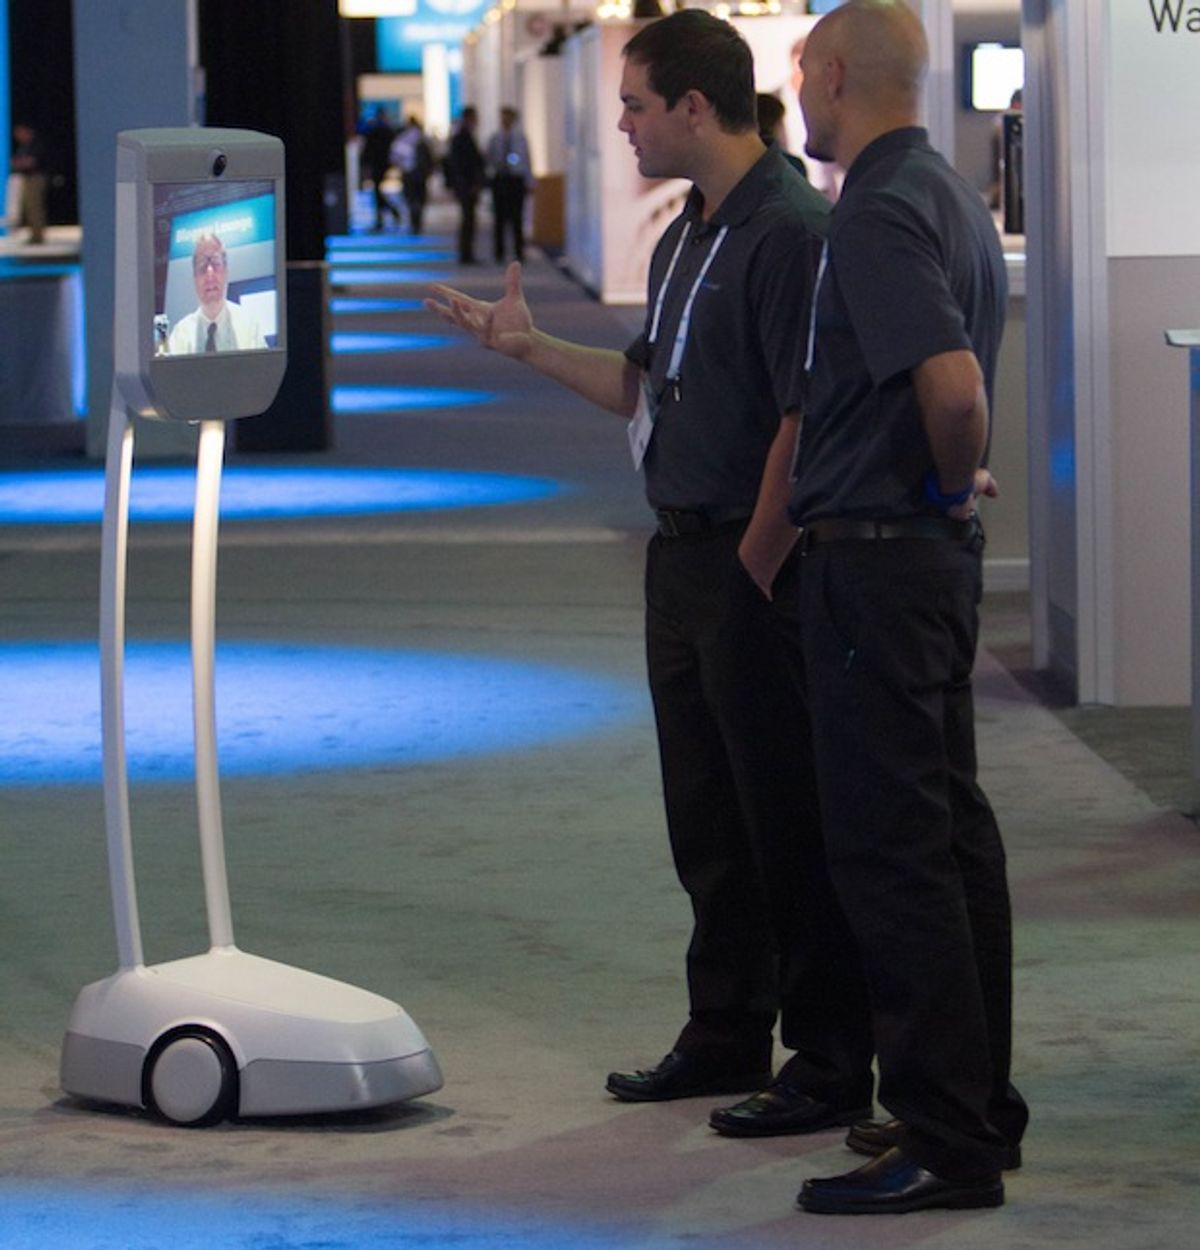 How to Attend Next Week's RoboBusiness Conference as a Robot